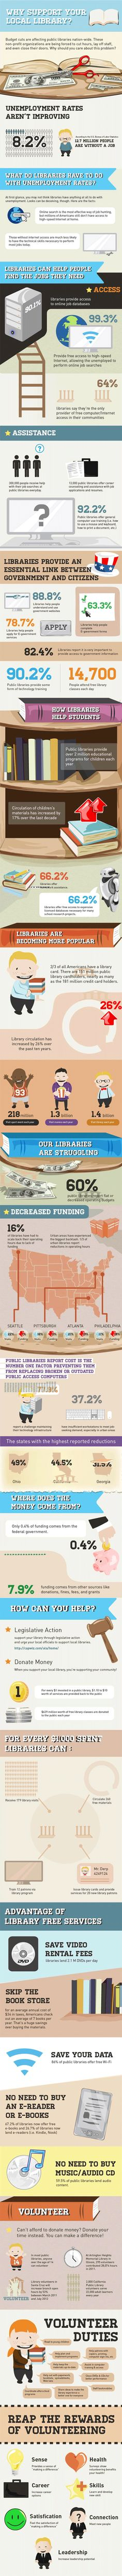 Why Support Your Local Library? Great Infographic!